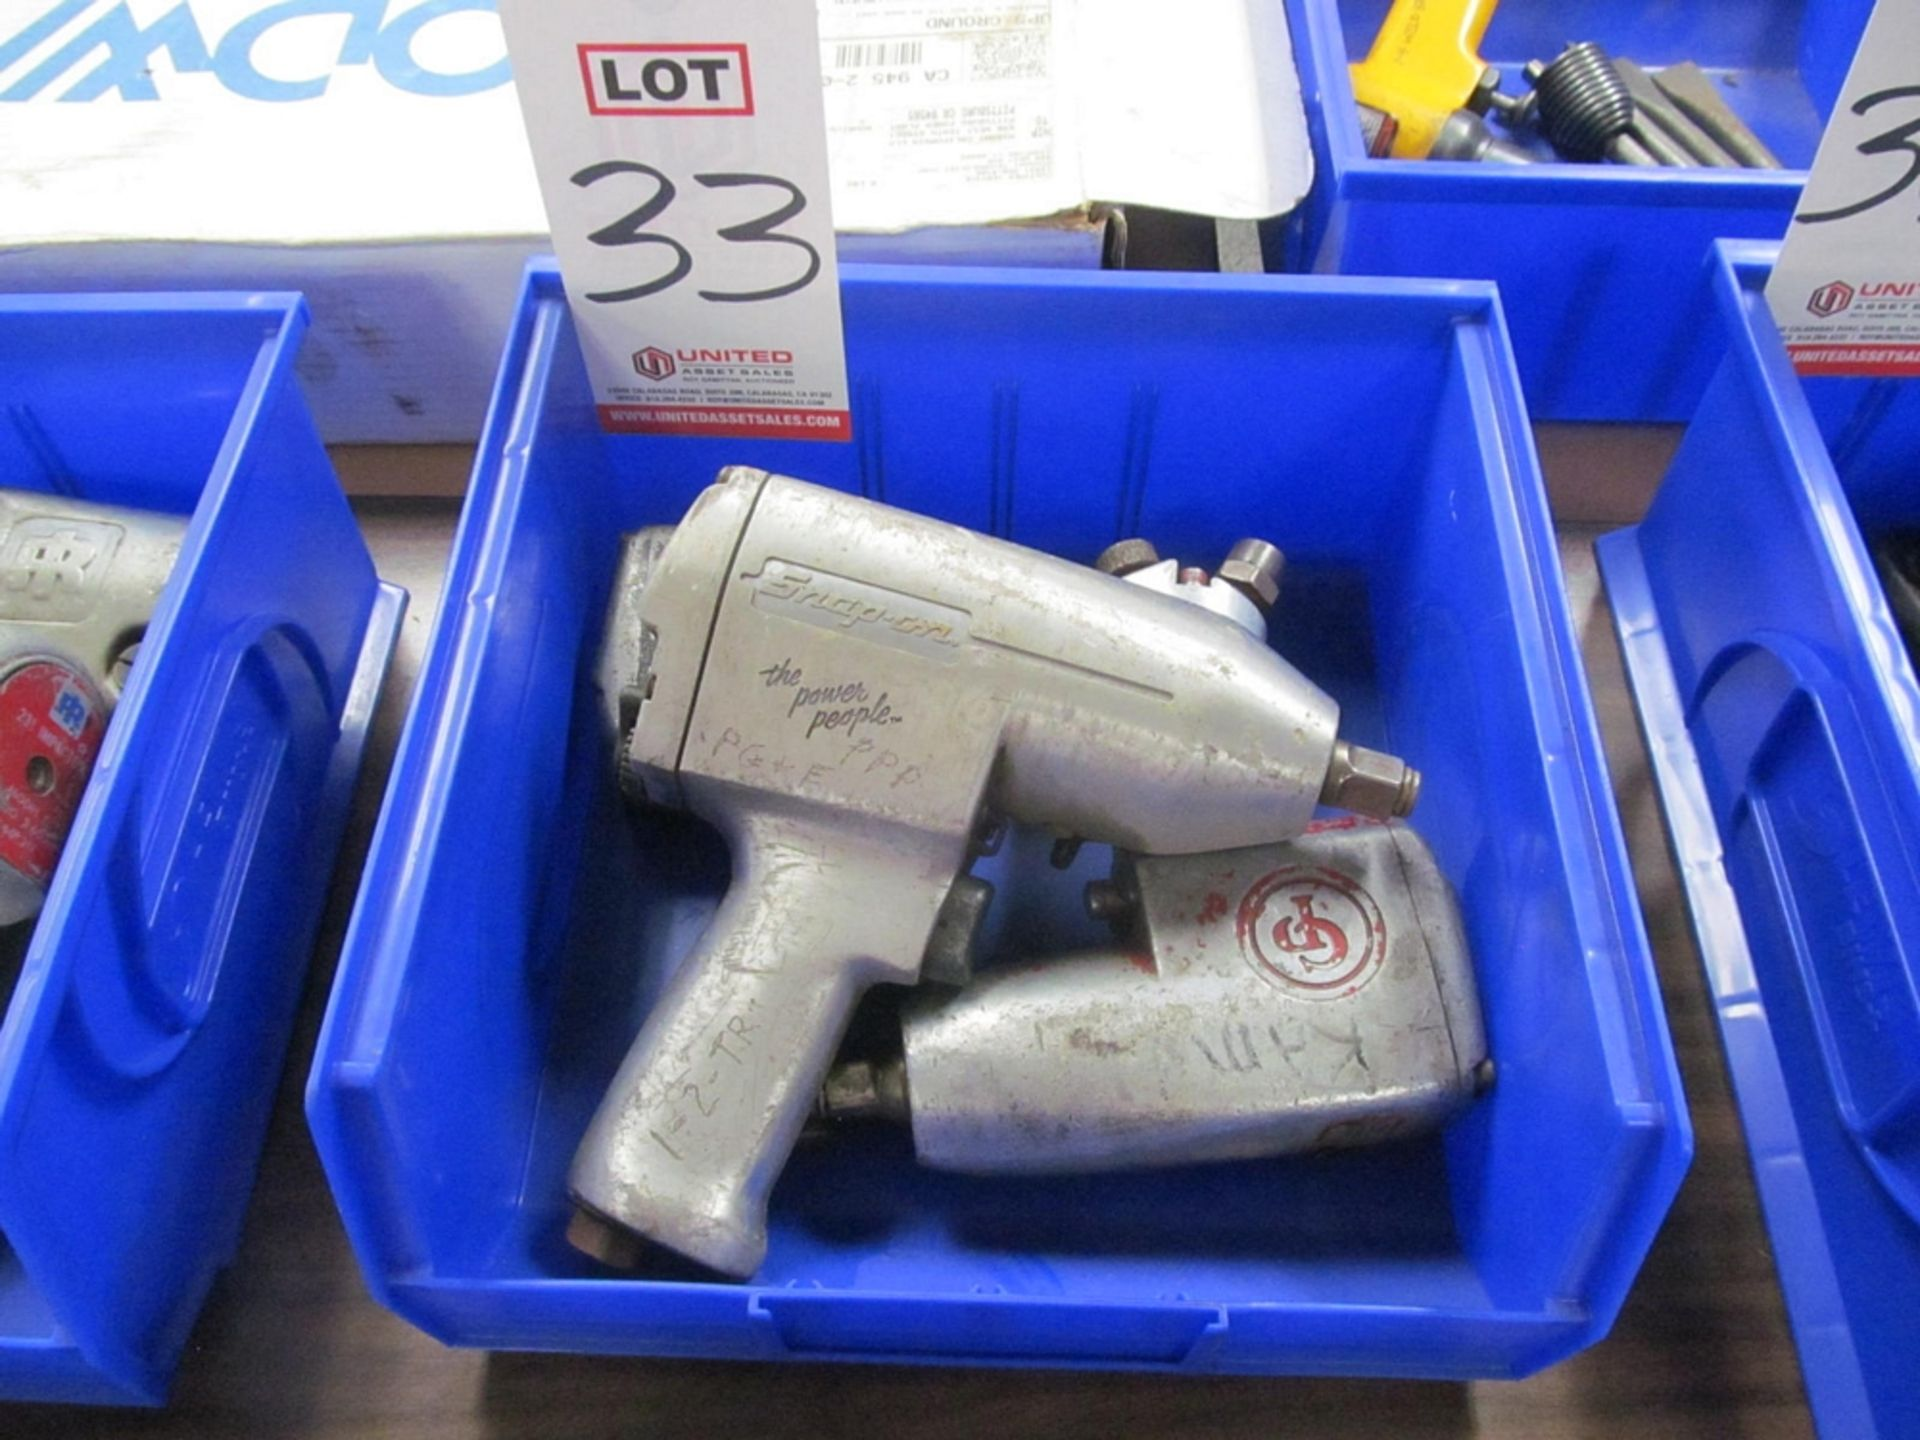 "Lot 33 - LOT - (3) 1/2"" IMPACTS: (2) CP #9547 AND (1) SNAP-ON #IM5100"